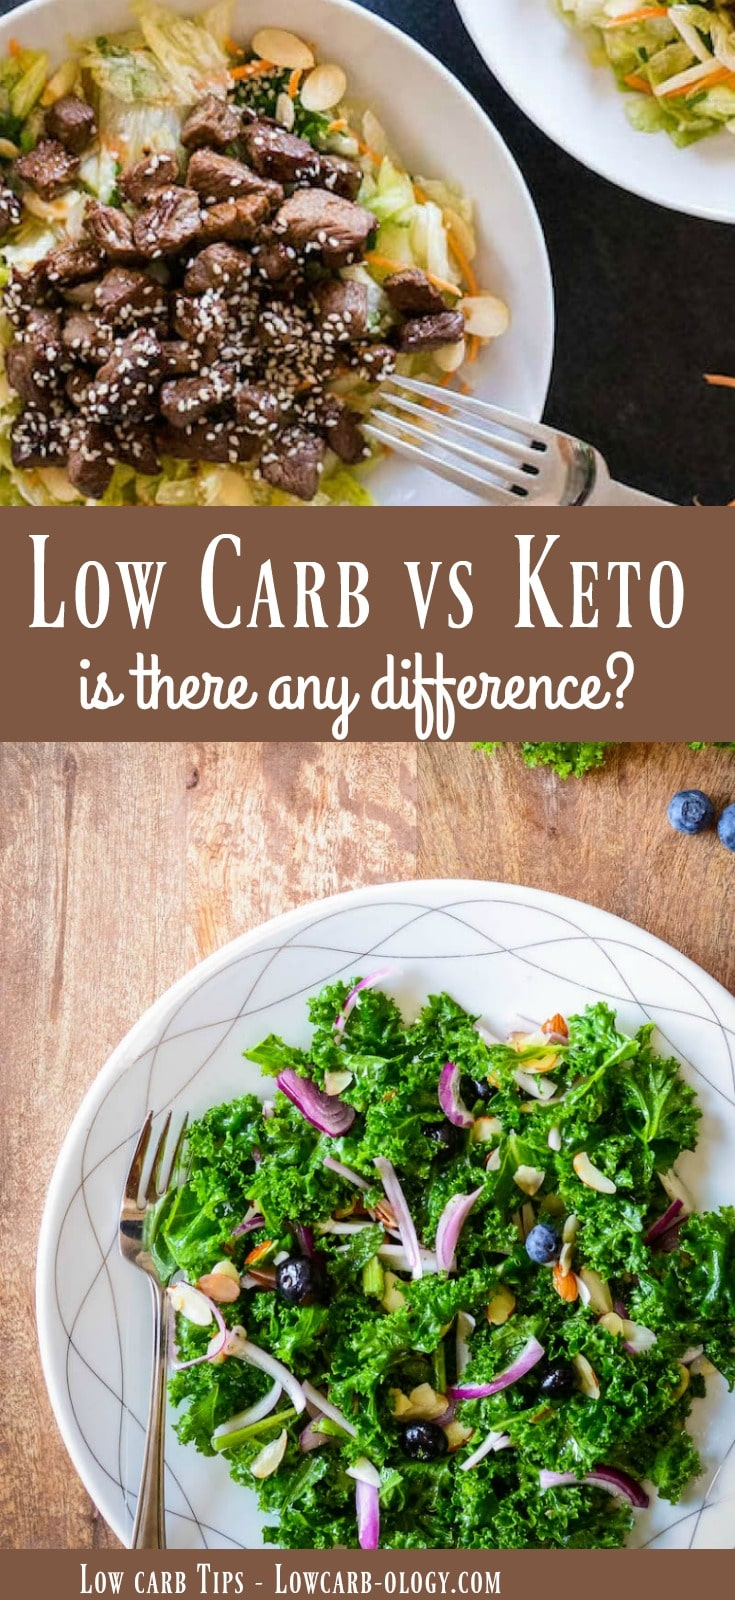 Low carb vs keto - is there any difference between the two diets? Find out more here plus how to get a helpful meal plan! from Lowcarb-ology.com